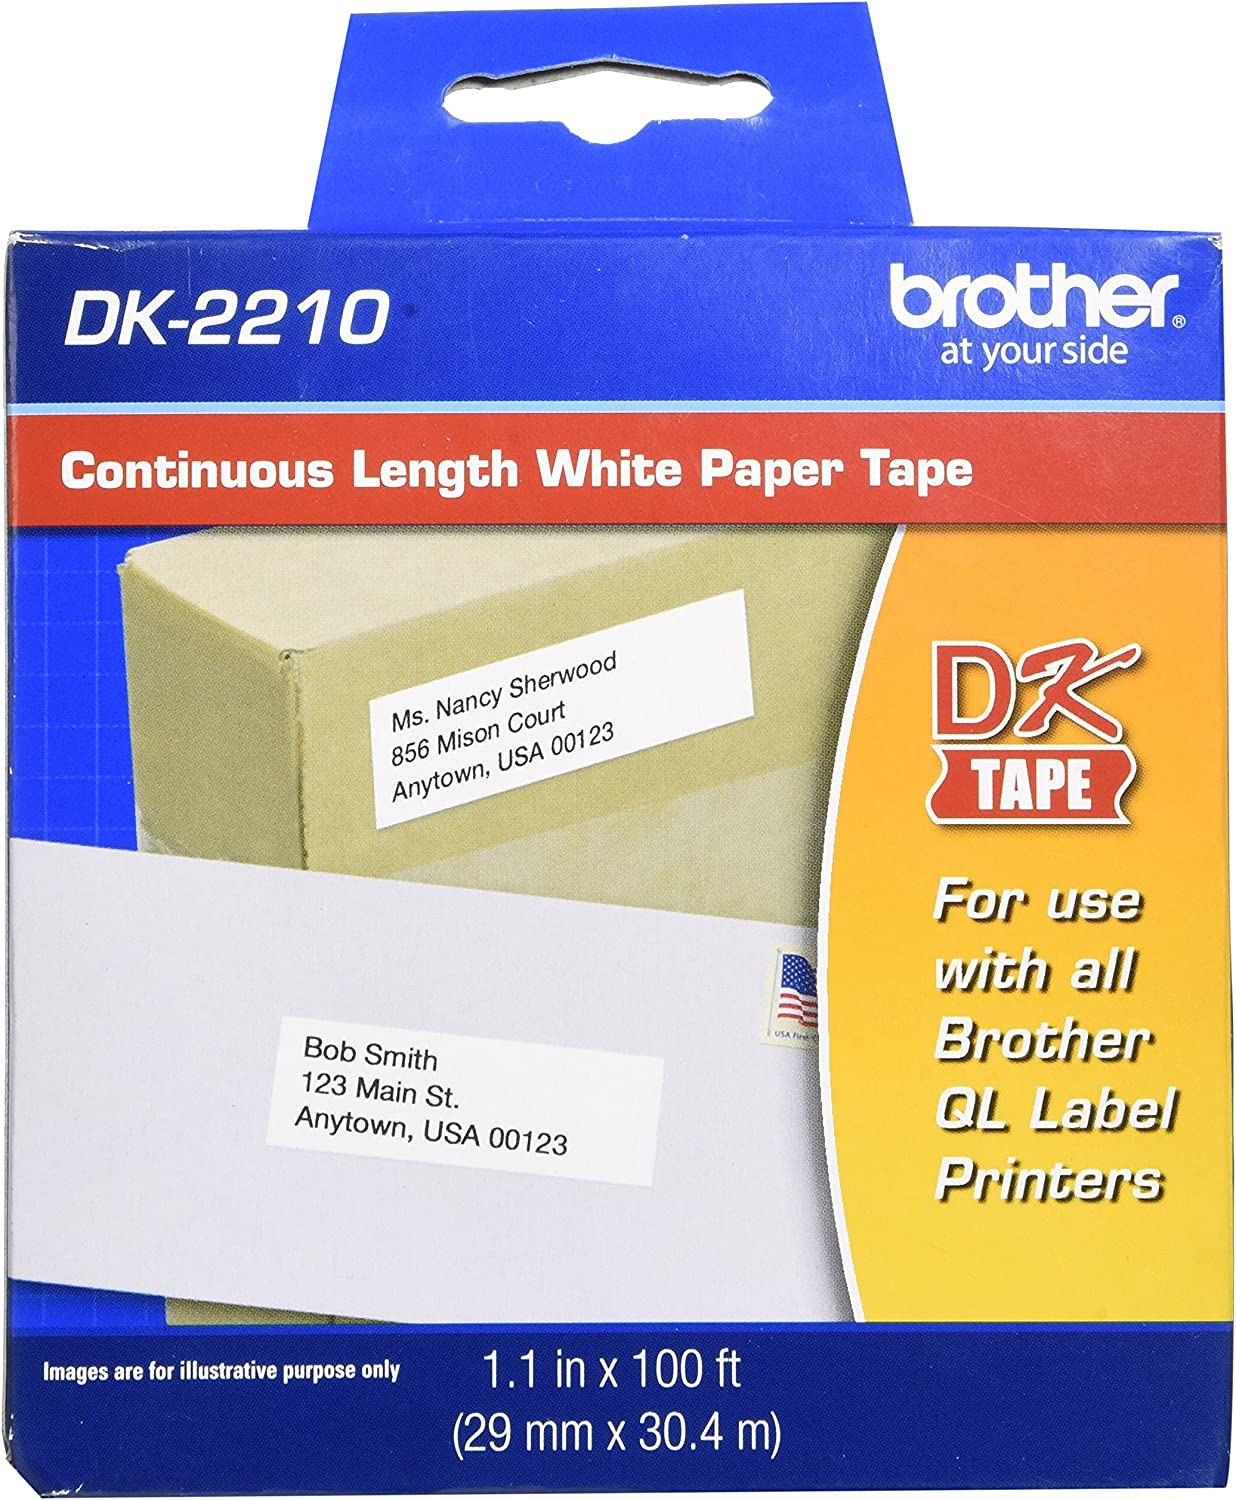 "Brother Genuine DK-2210 Continuous Length Black on White Paper Tape for Brother QL Label Printers, 1.1"" x 100' (29mm x 30.4M), 1 Roll per Box, DK2210 : Office Products"